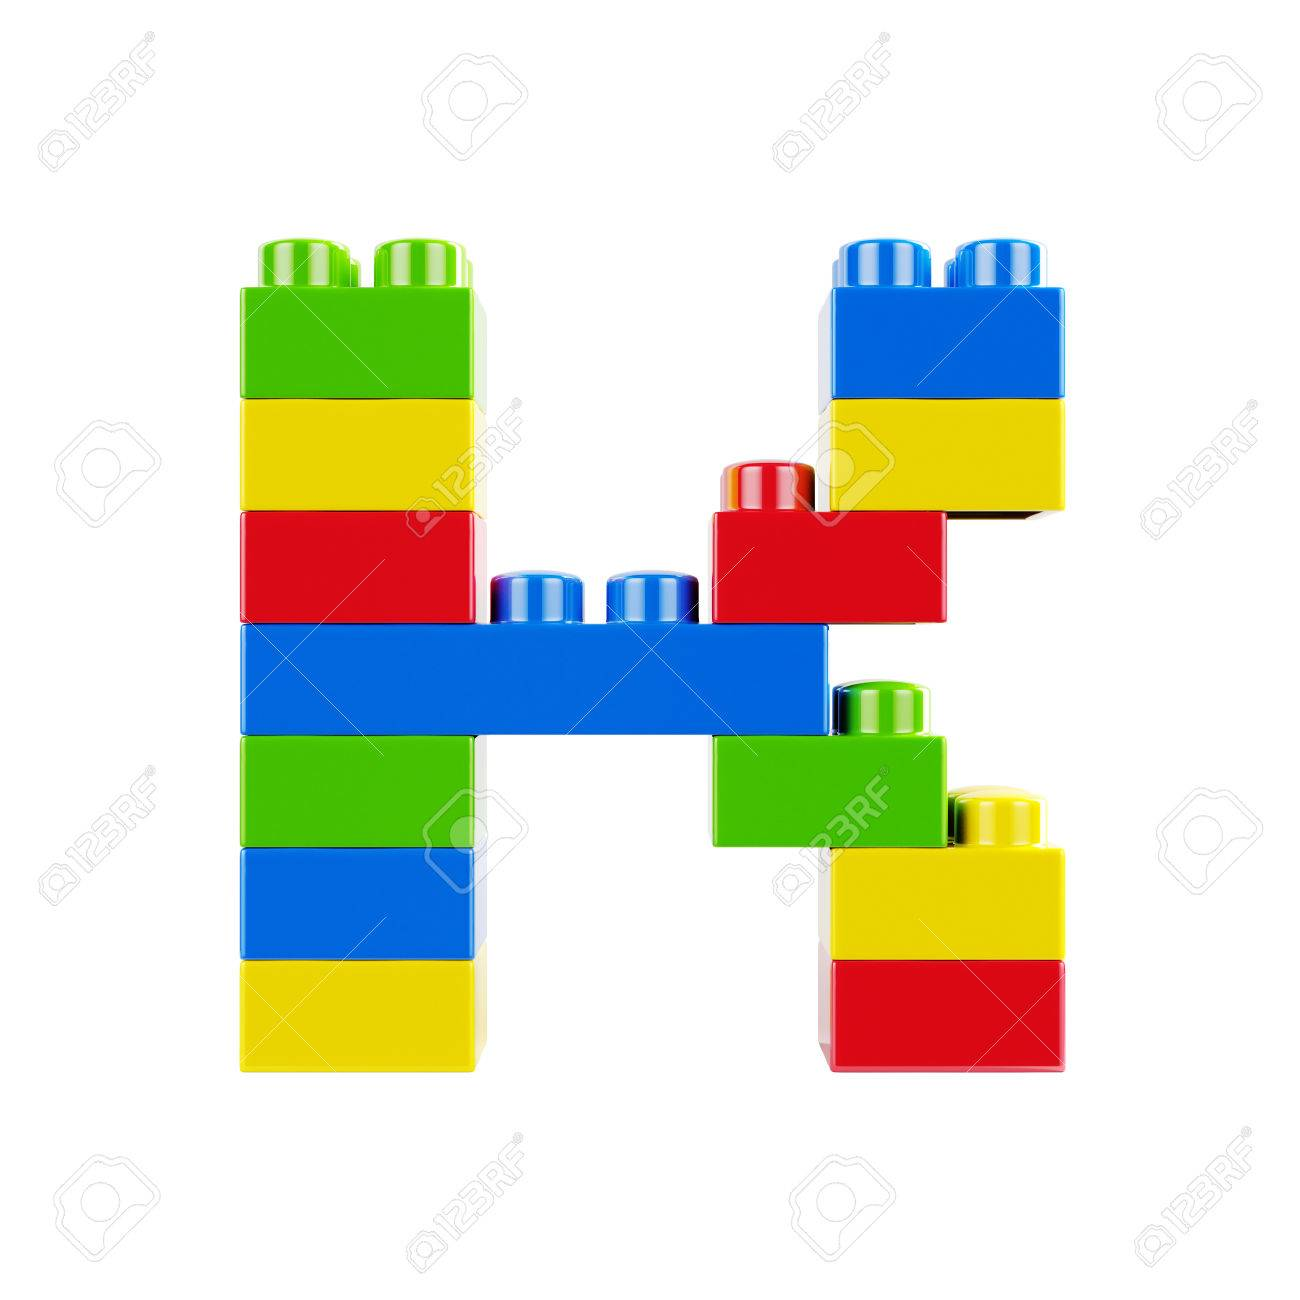 Letter K Plastic Font Alphabet Character Made Of Toy Construction